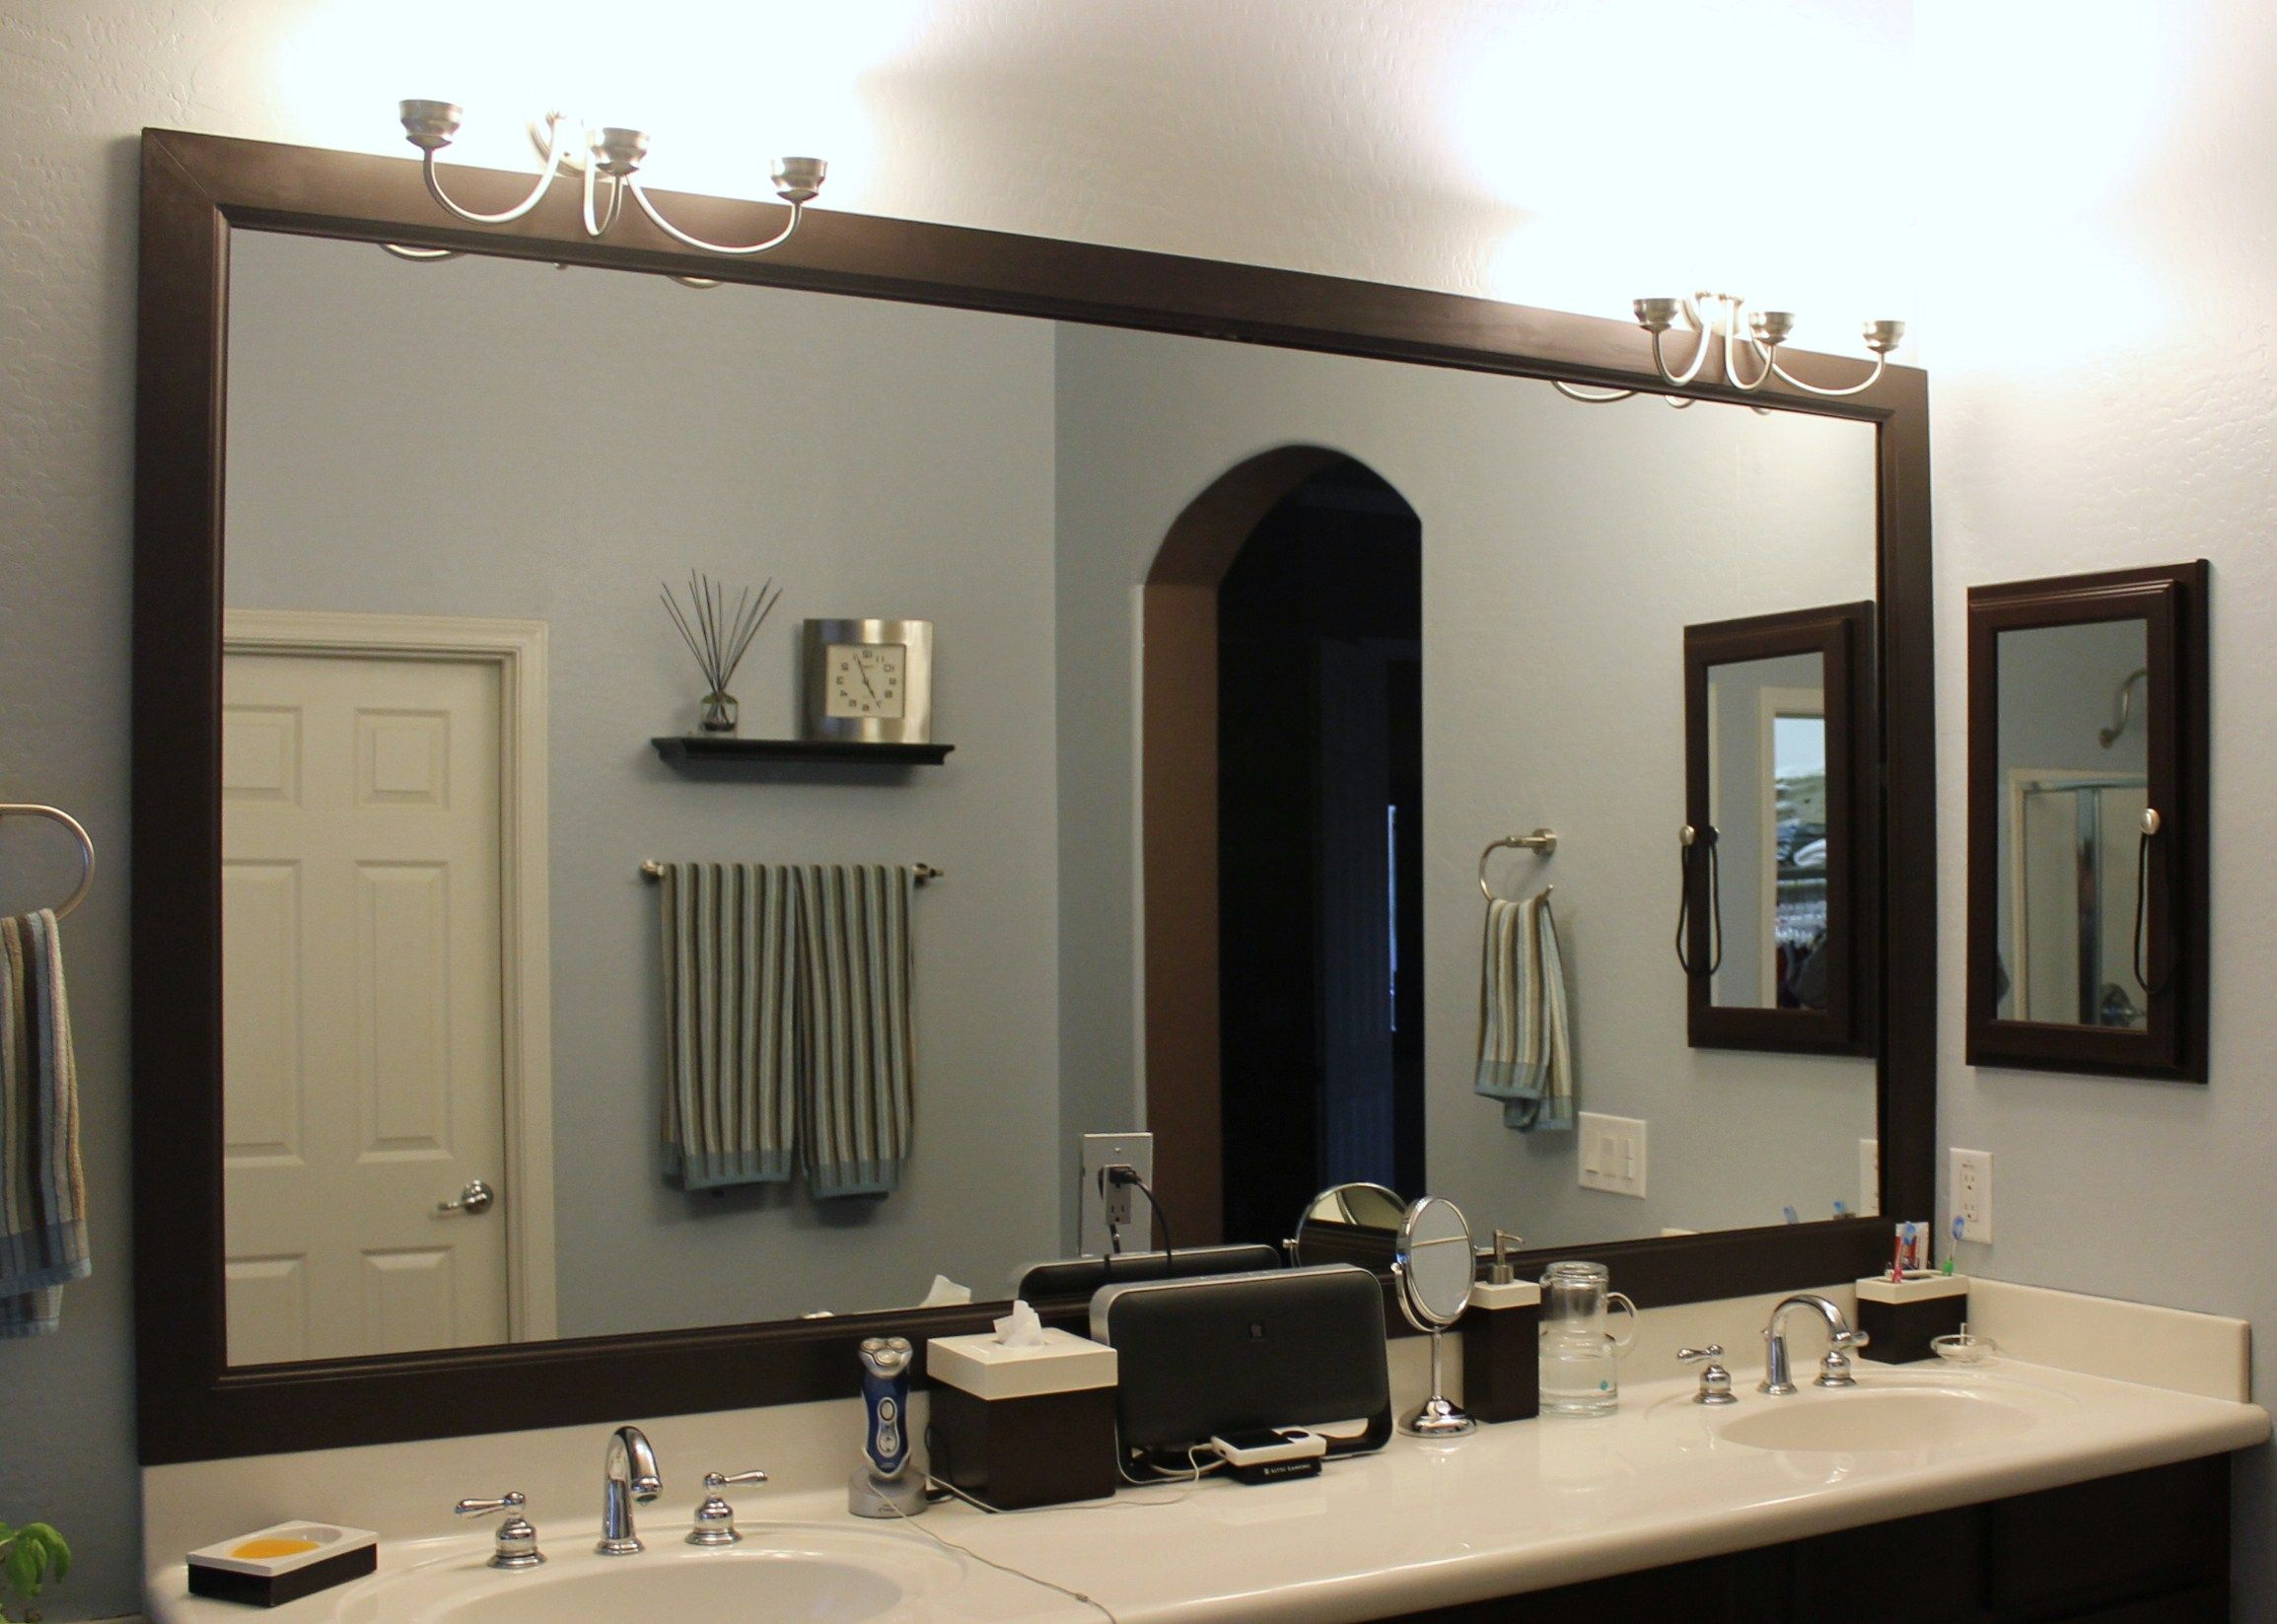 Diy bathroom mirror frame bathroom ideas pinterest for Vanity mirrors for bathroom ideas